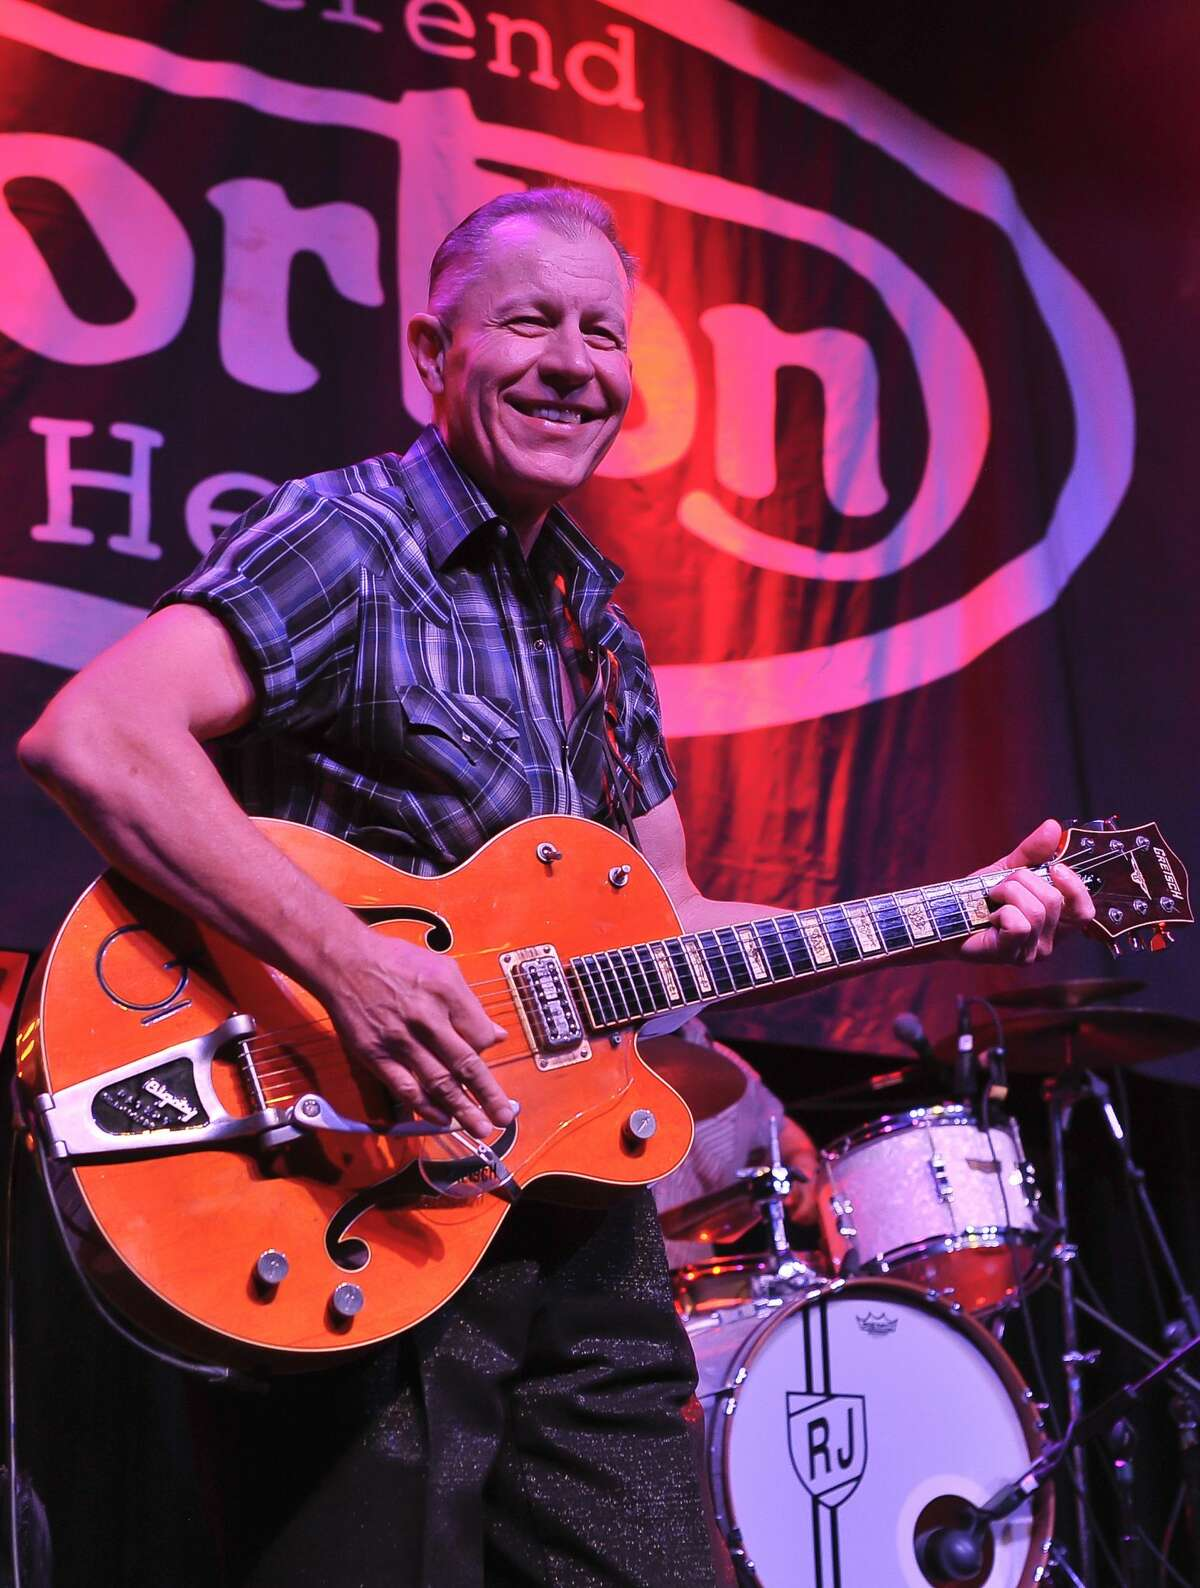 Reverand Horton Heat: The Texas-based psychobilly band, will perform Wednesday, Nov. 15 at the Avenida Plaza. Party on the Plaza is from 6 to 10 p.m. More Details: www.discoverygreen.com